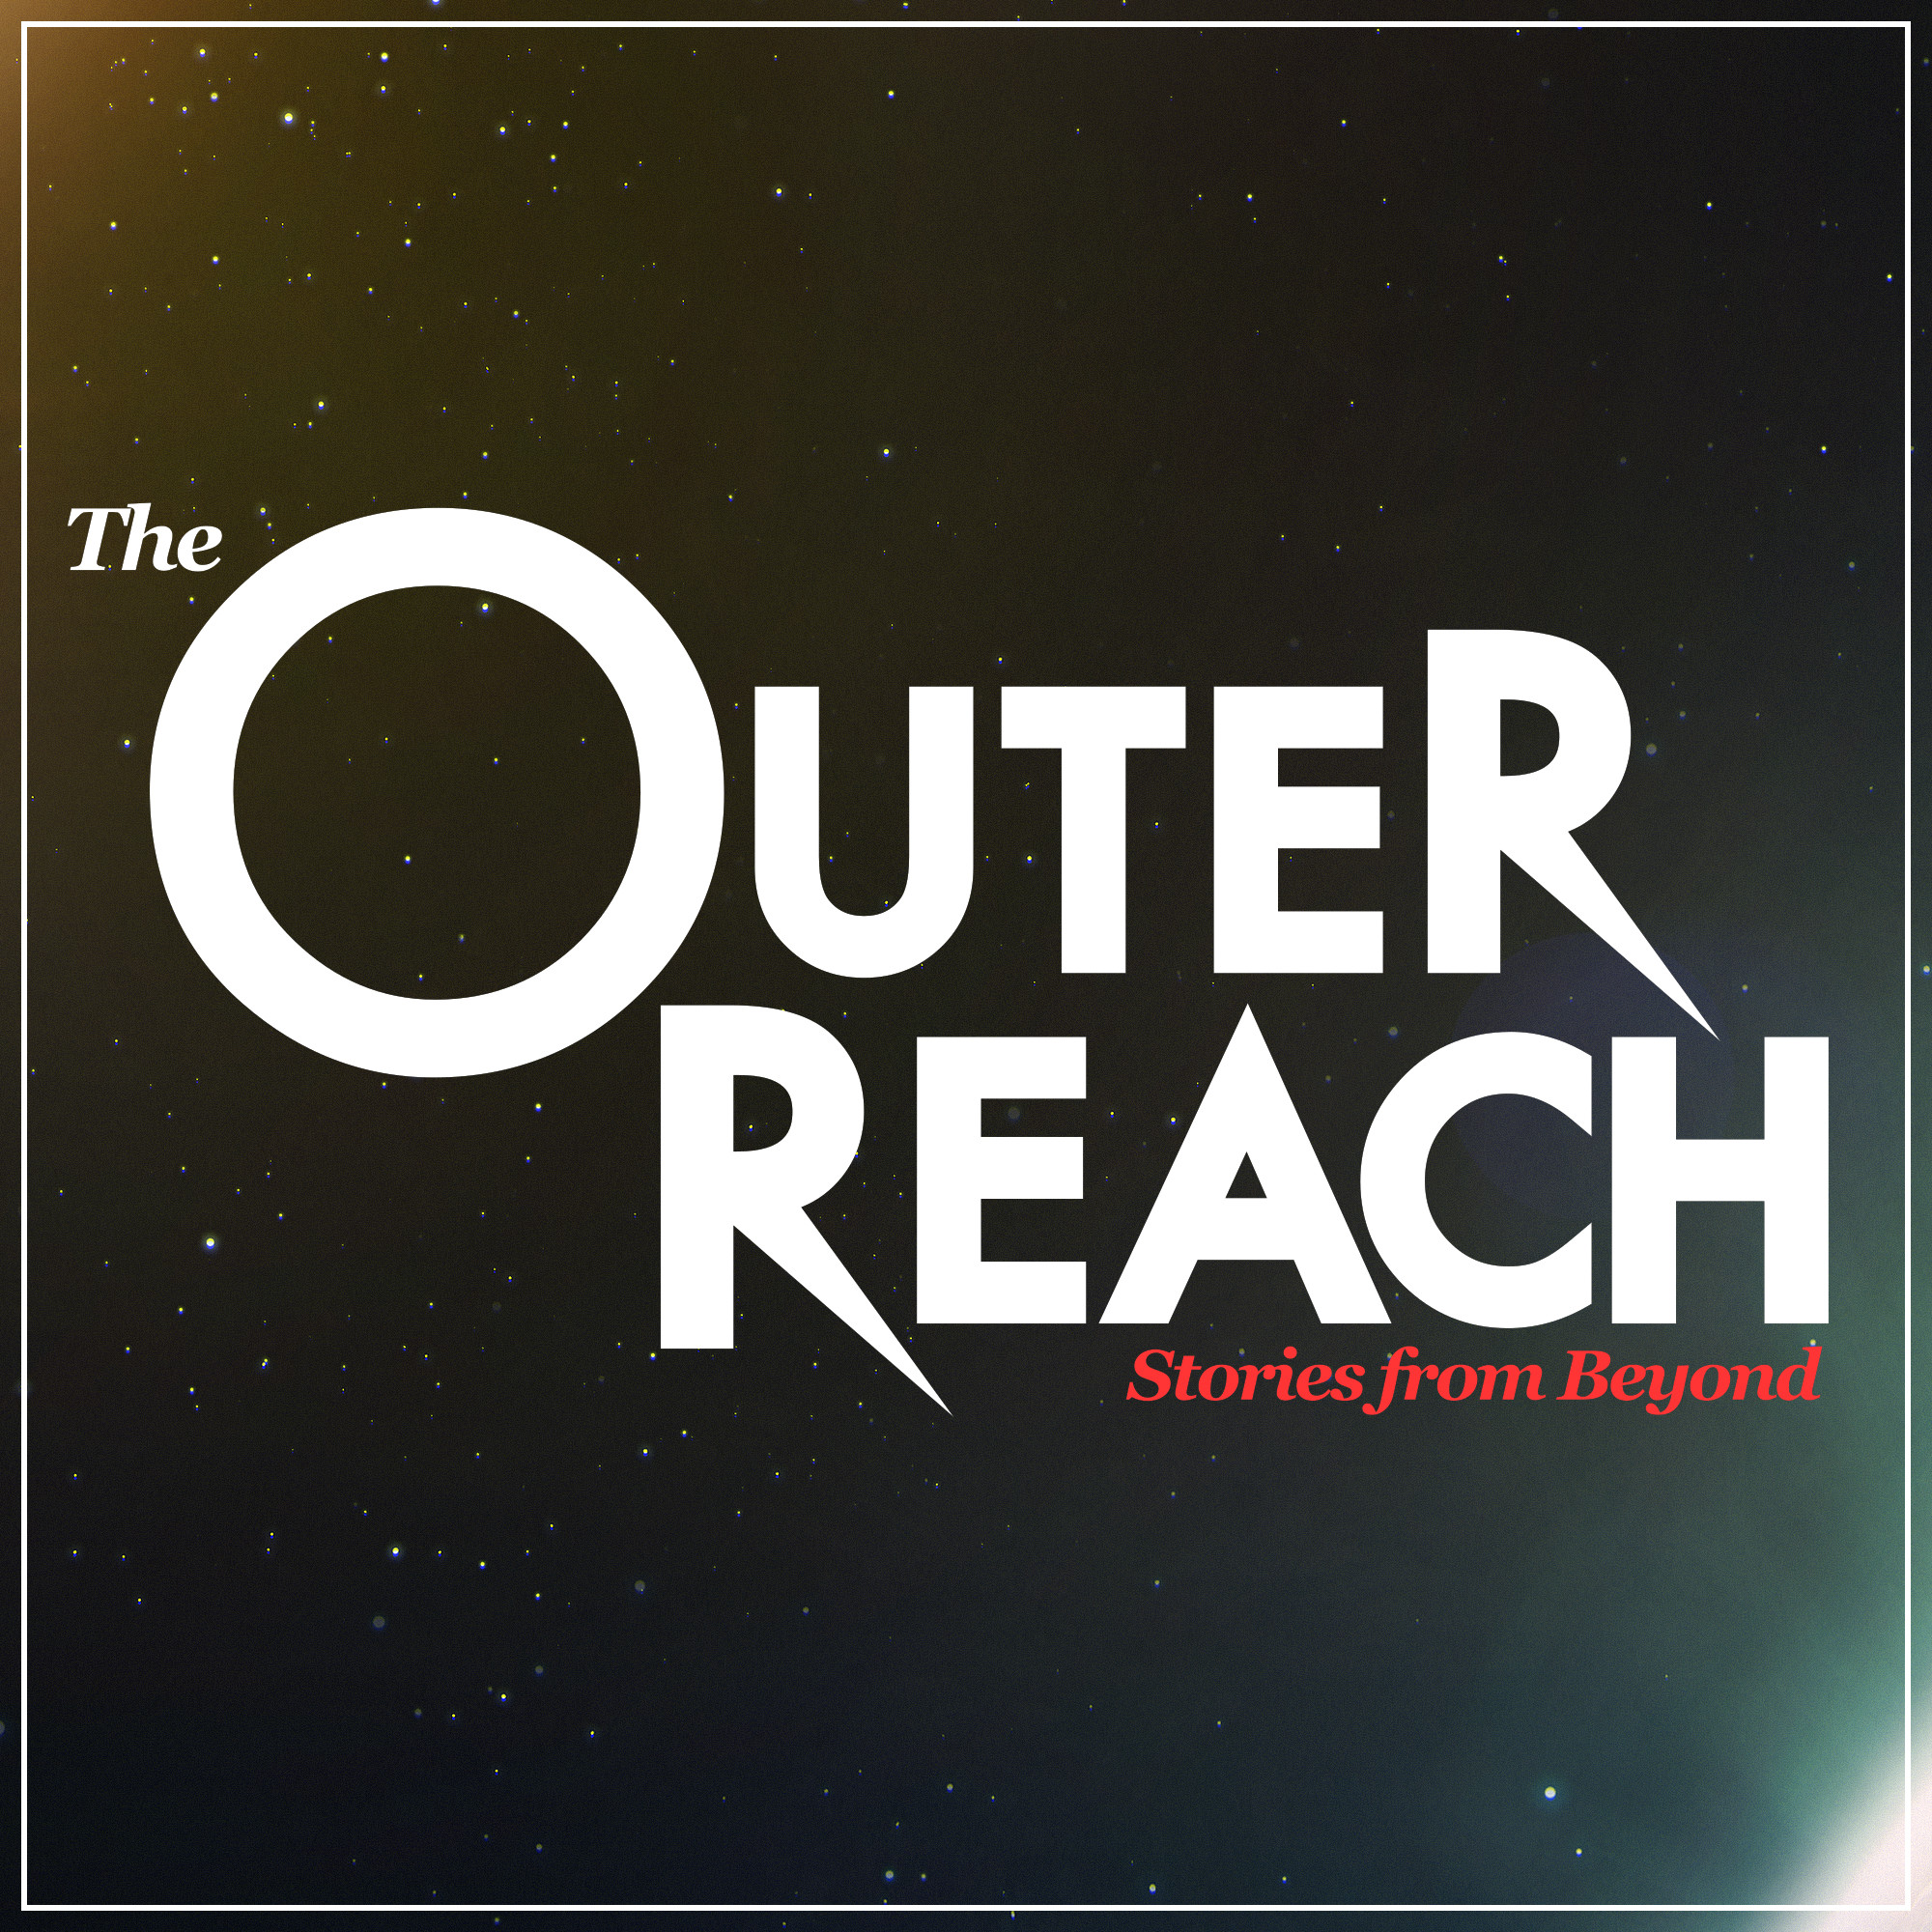 The Outer Reach